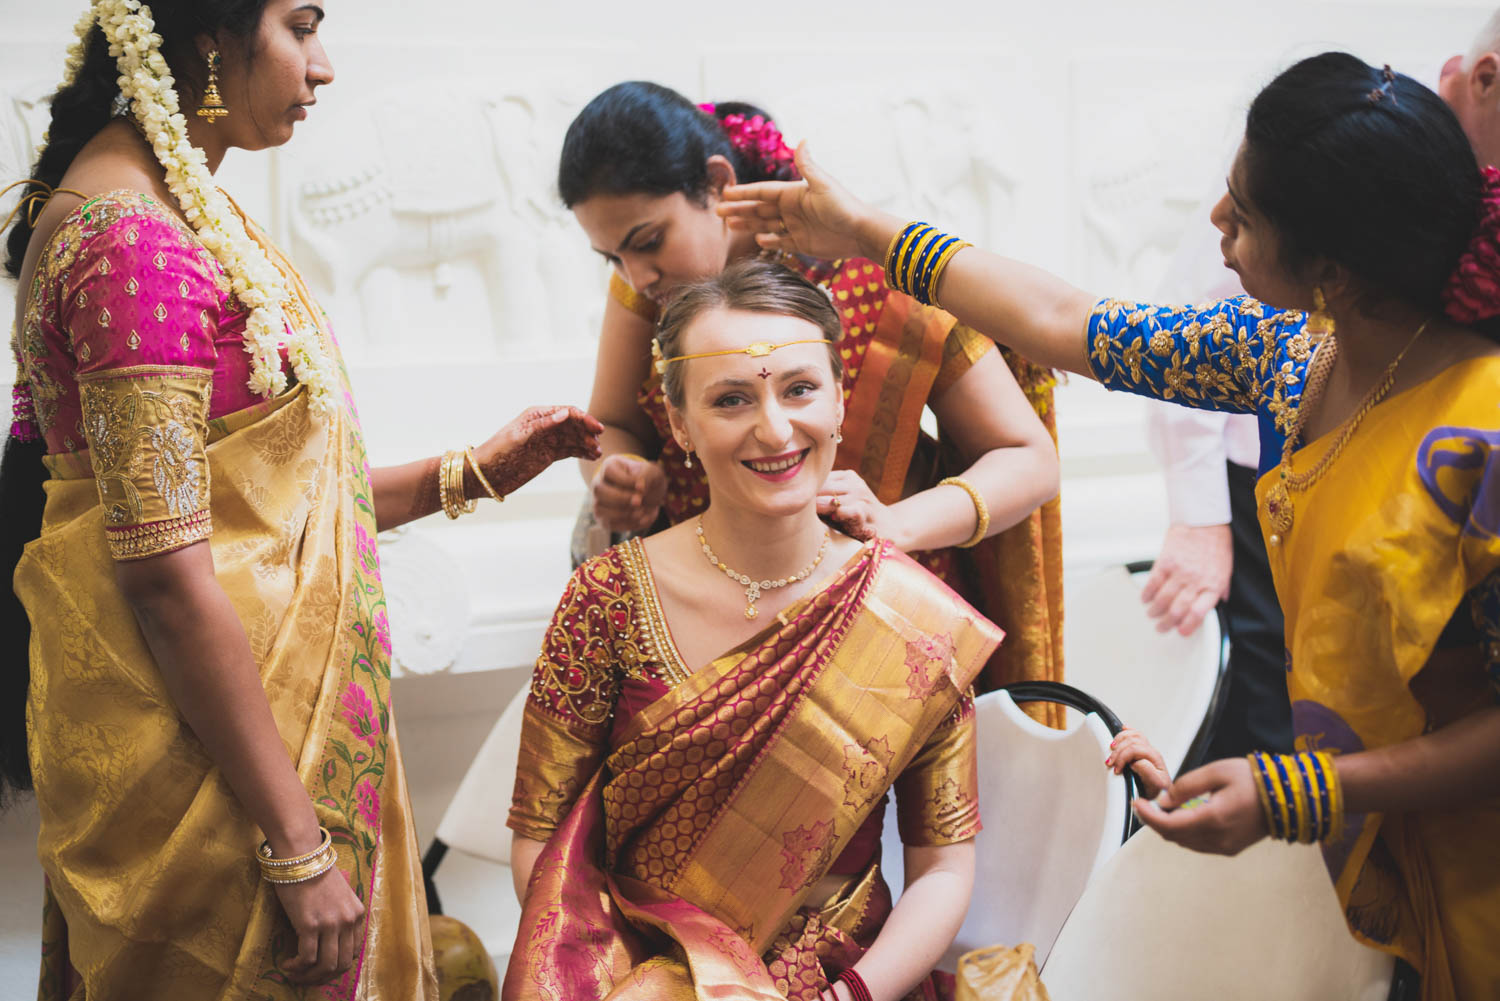 ecaterina-chandu-indian-wedding6.jpg